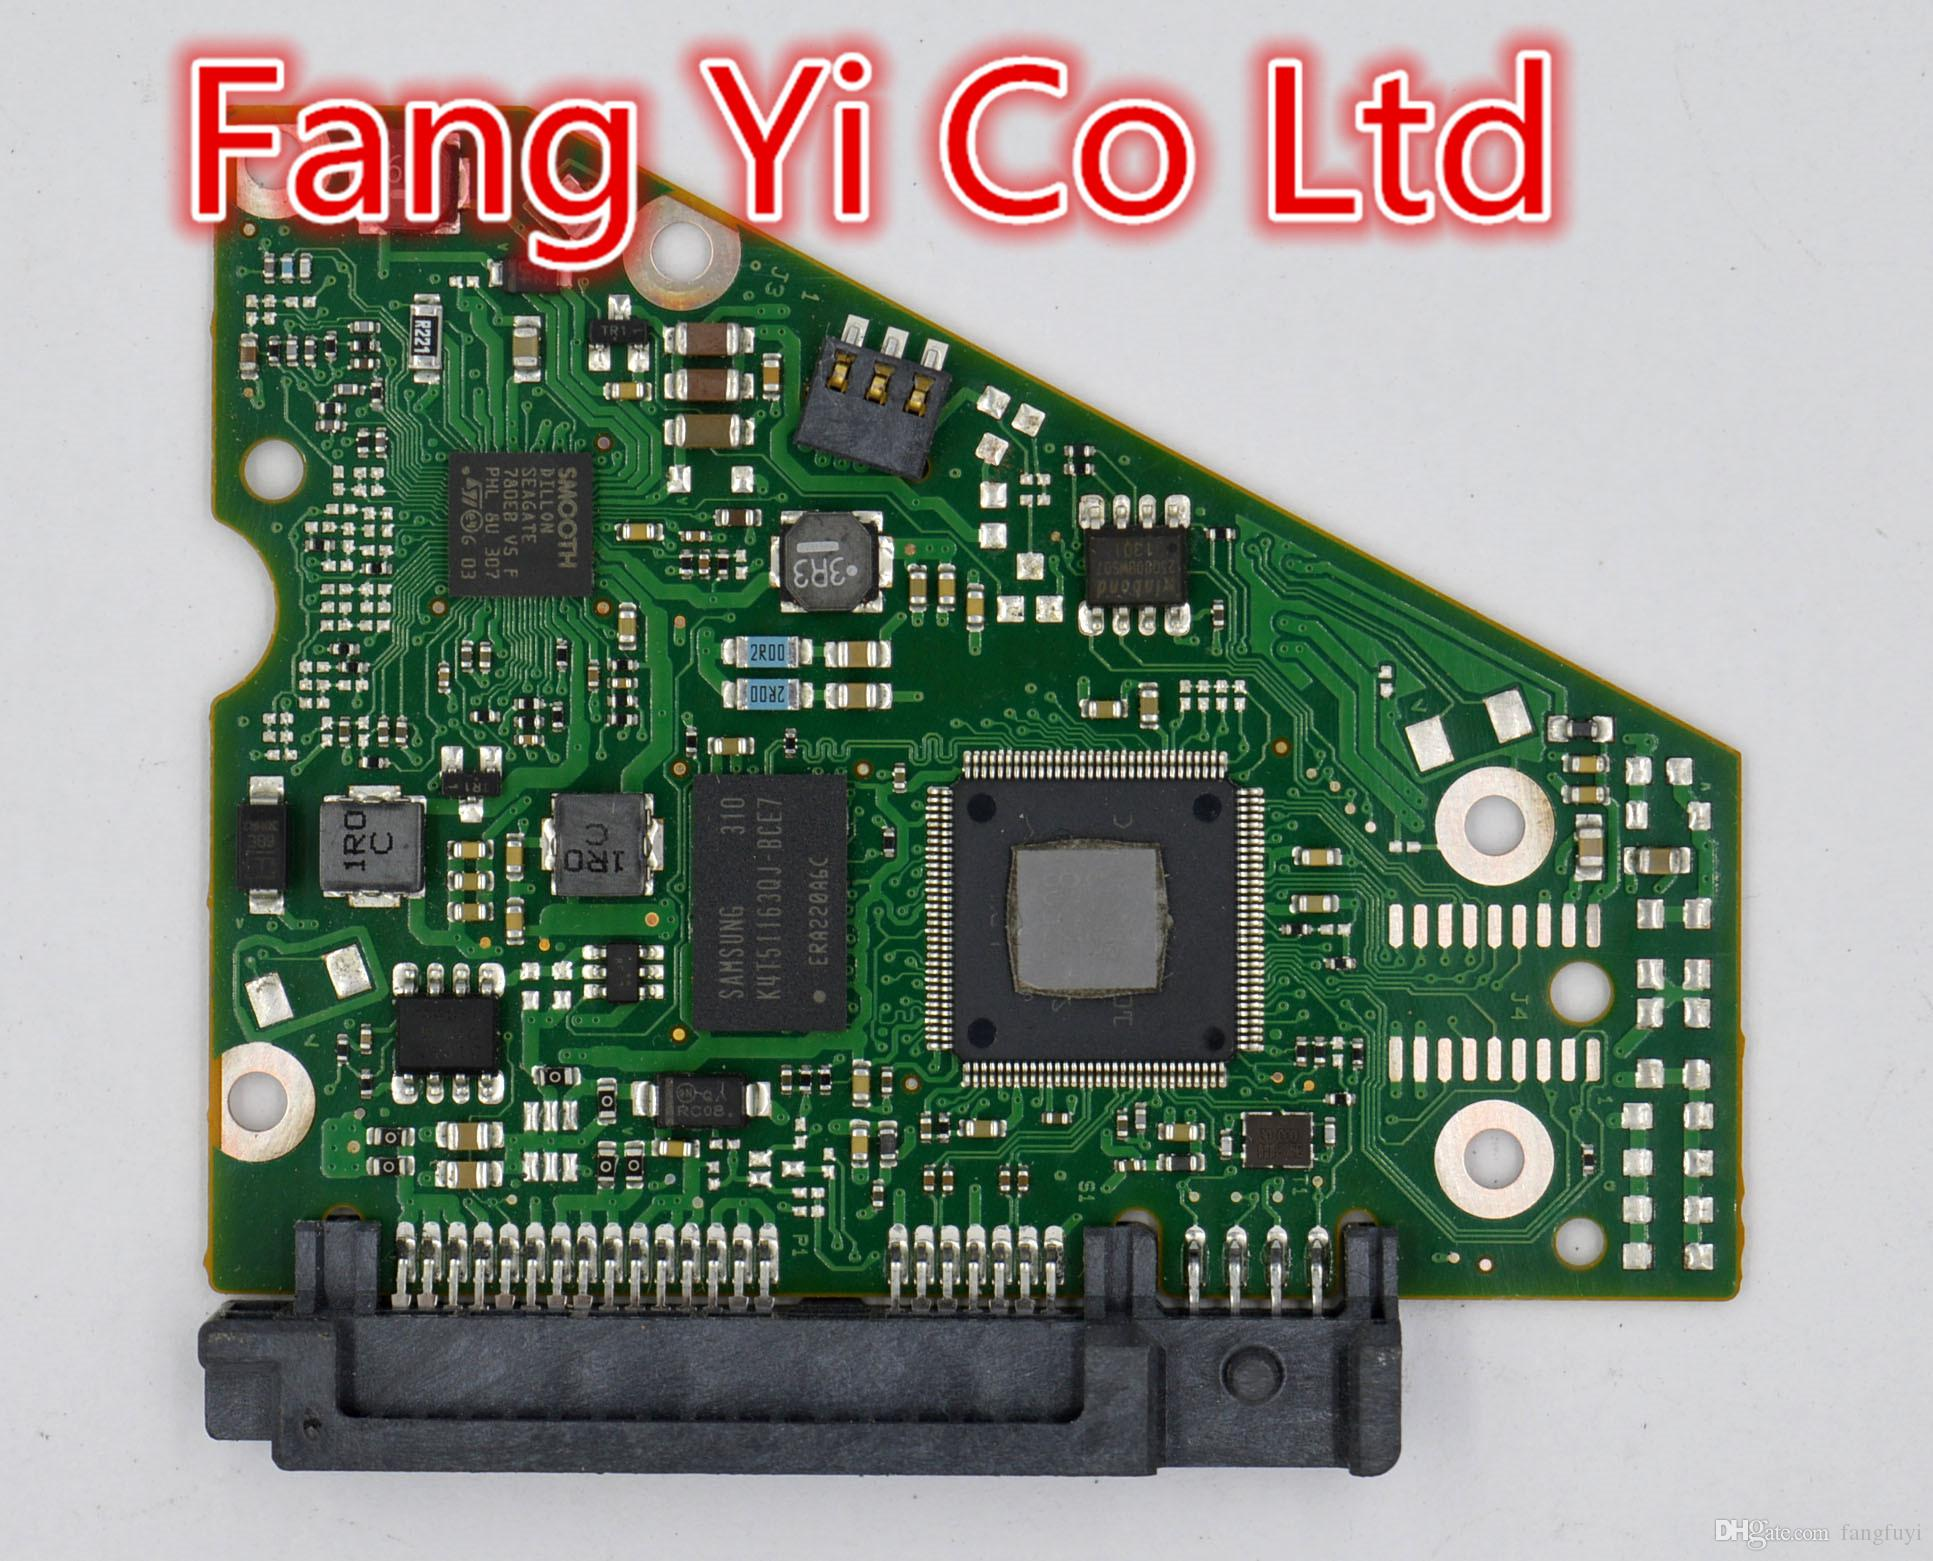 St4000dm000 Hdd Pcb For Seagate Logic Board Number 100710248 101 How To Build A Circuit Rev C Main Controller Ic B41281v0 Gadets Latest Tech From Fangfuyi 2011